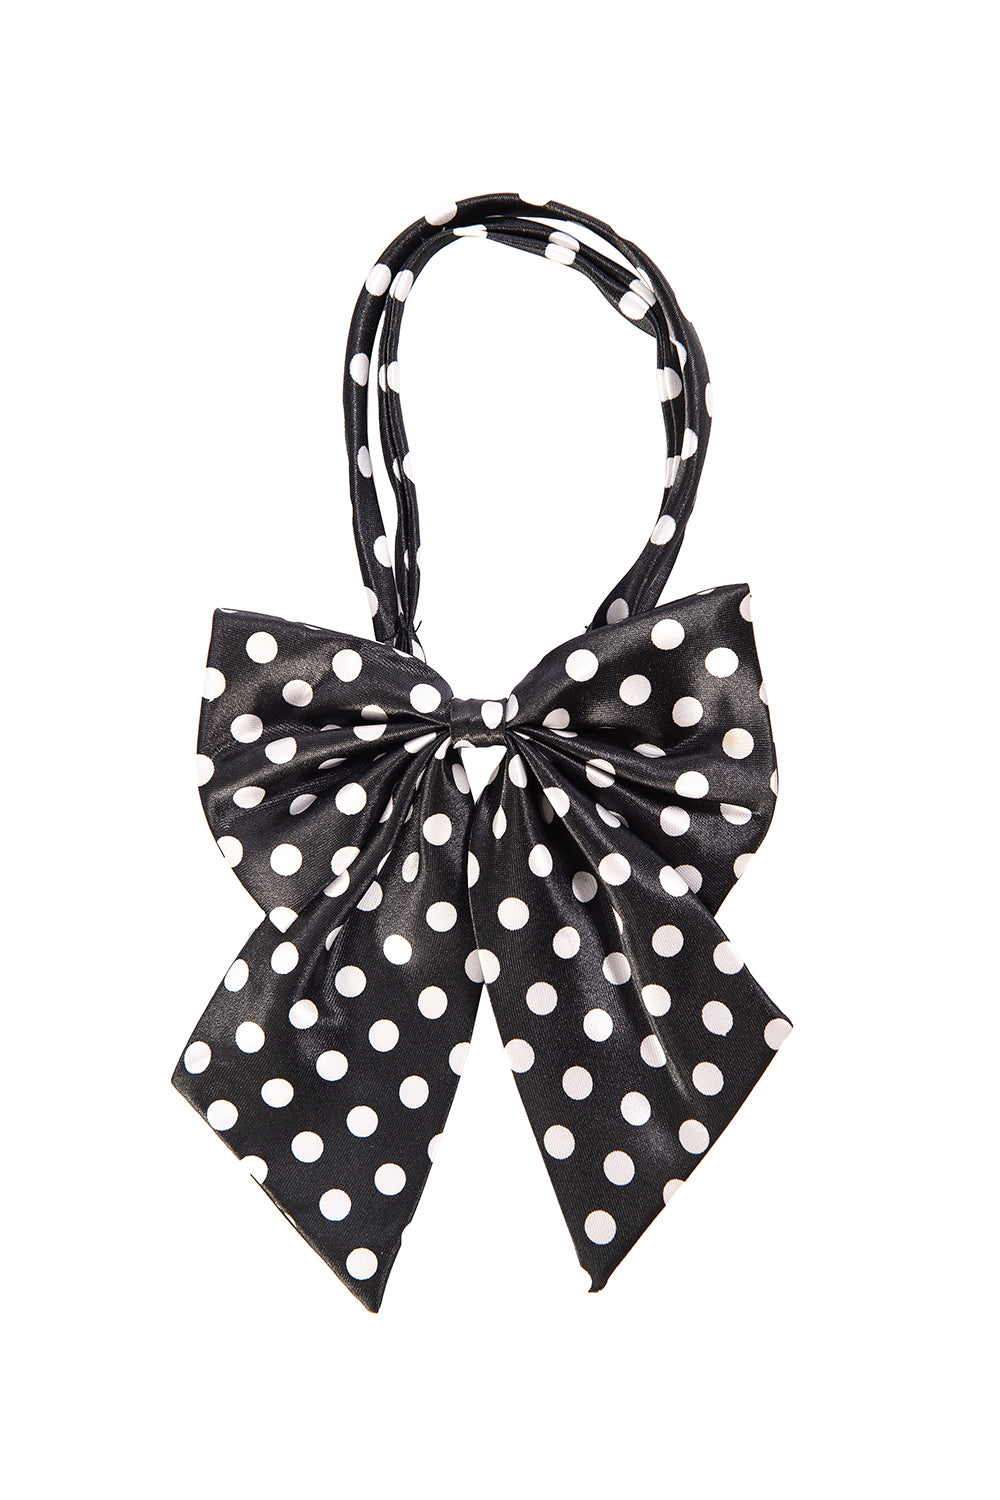 Banned Retro Scarlet Bow Tie Polka Dot